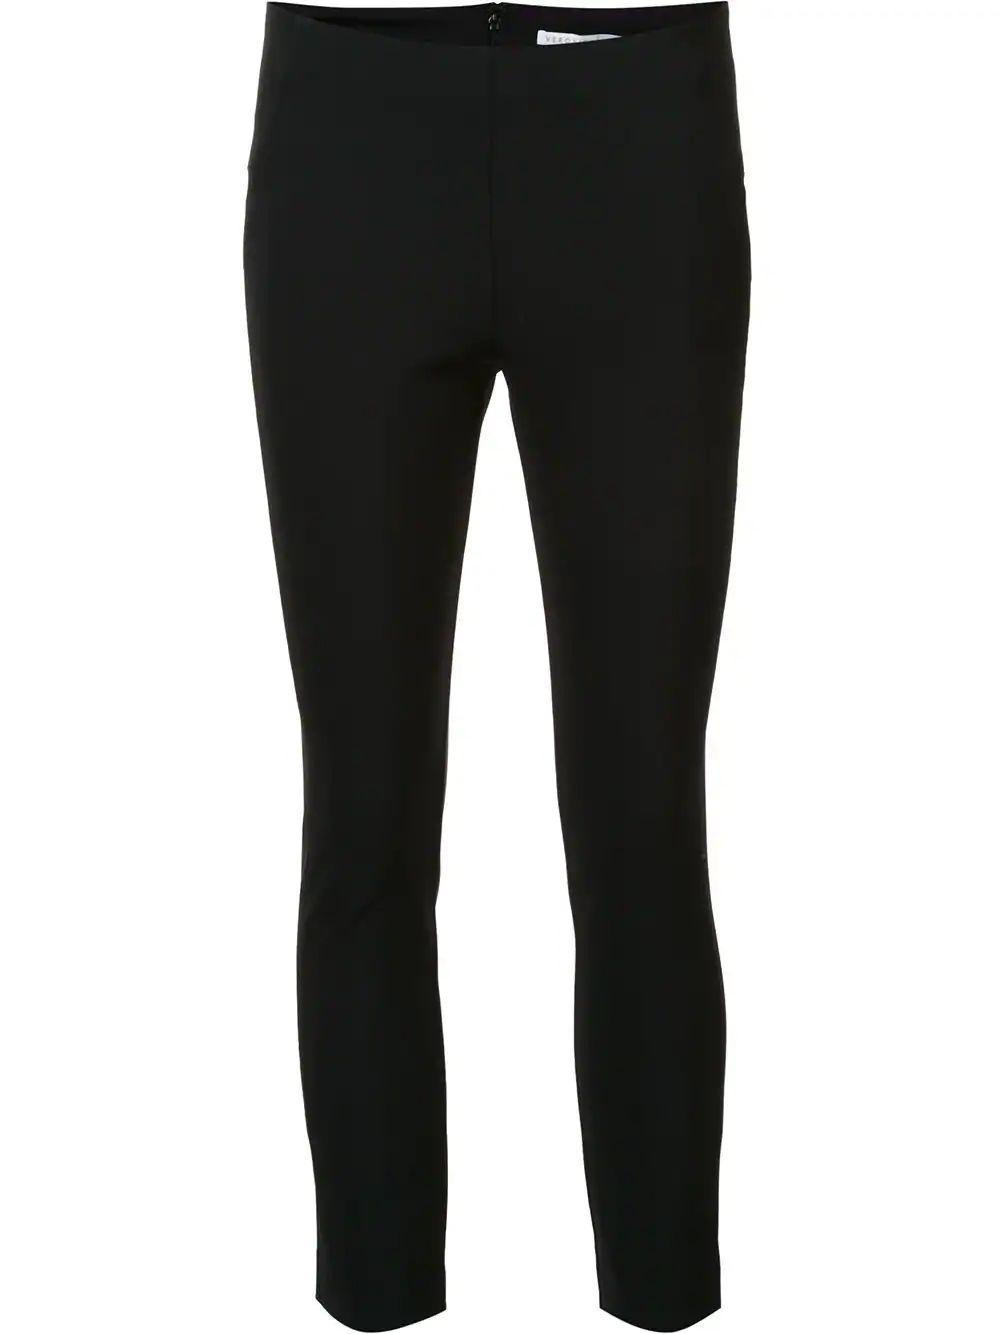 Bi Stretch Scuba Zip Back Pant Item # CORE-BSS6193